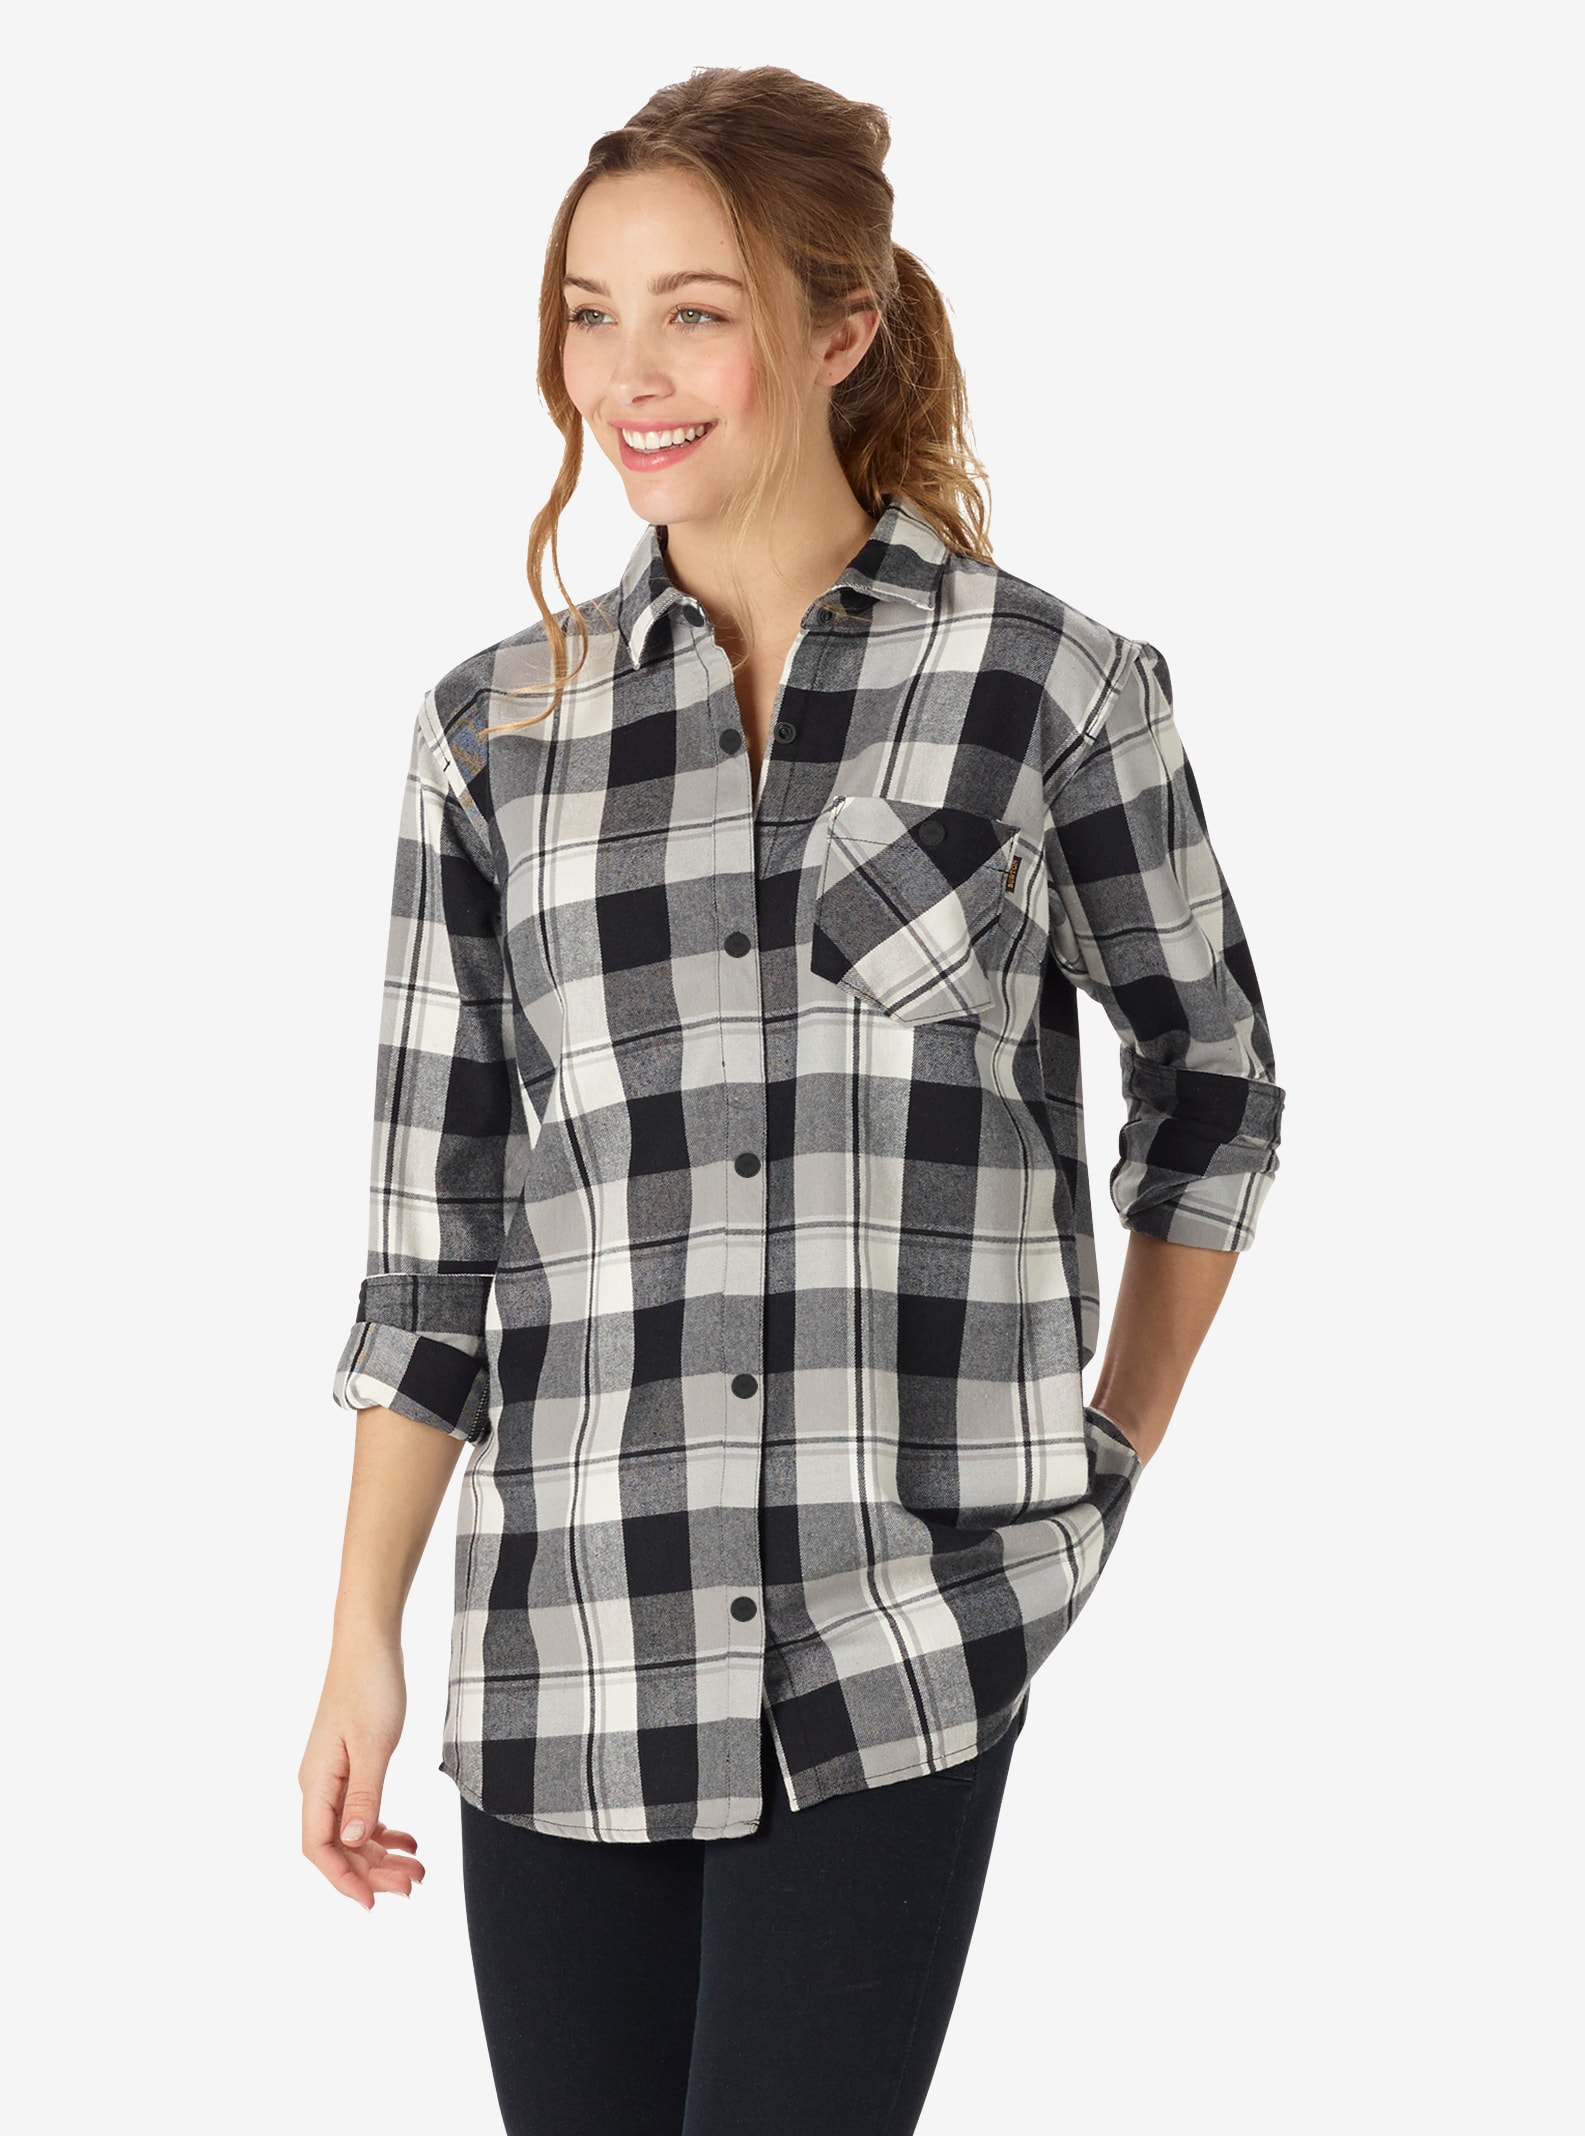 Women's Burton Grace Tech Flannel shown in True Black 77 Plaid